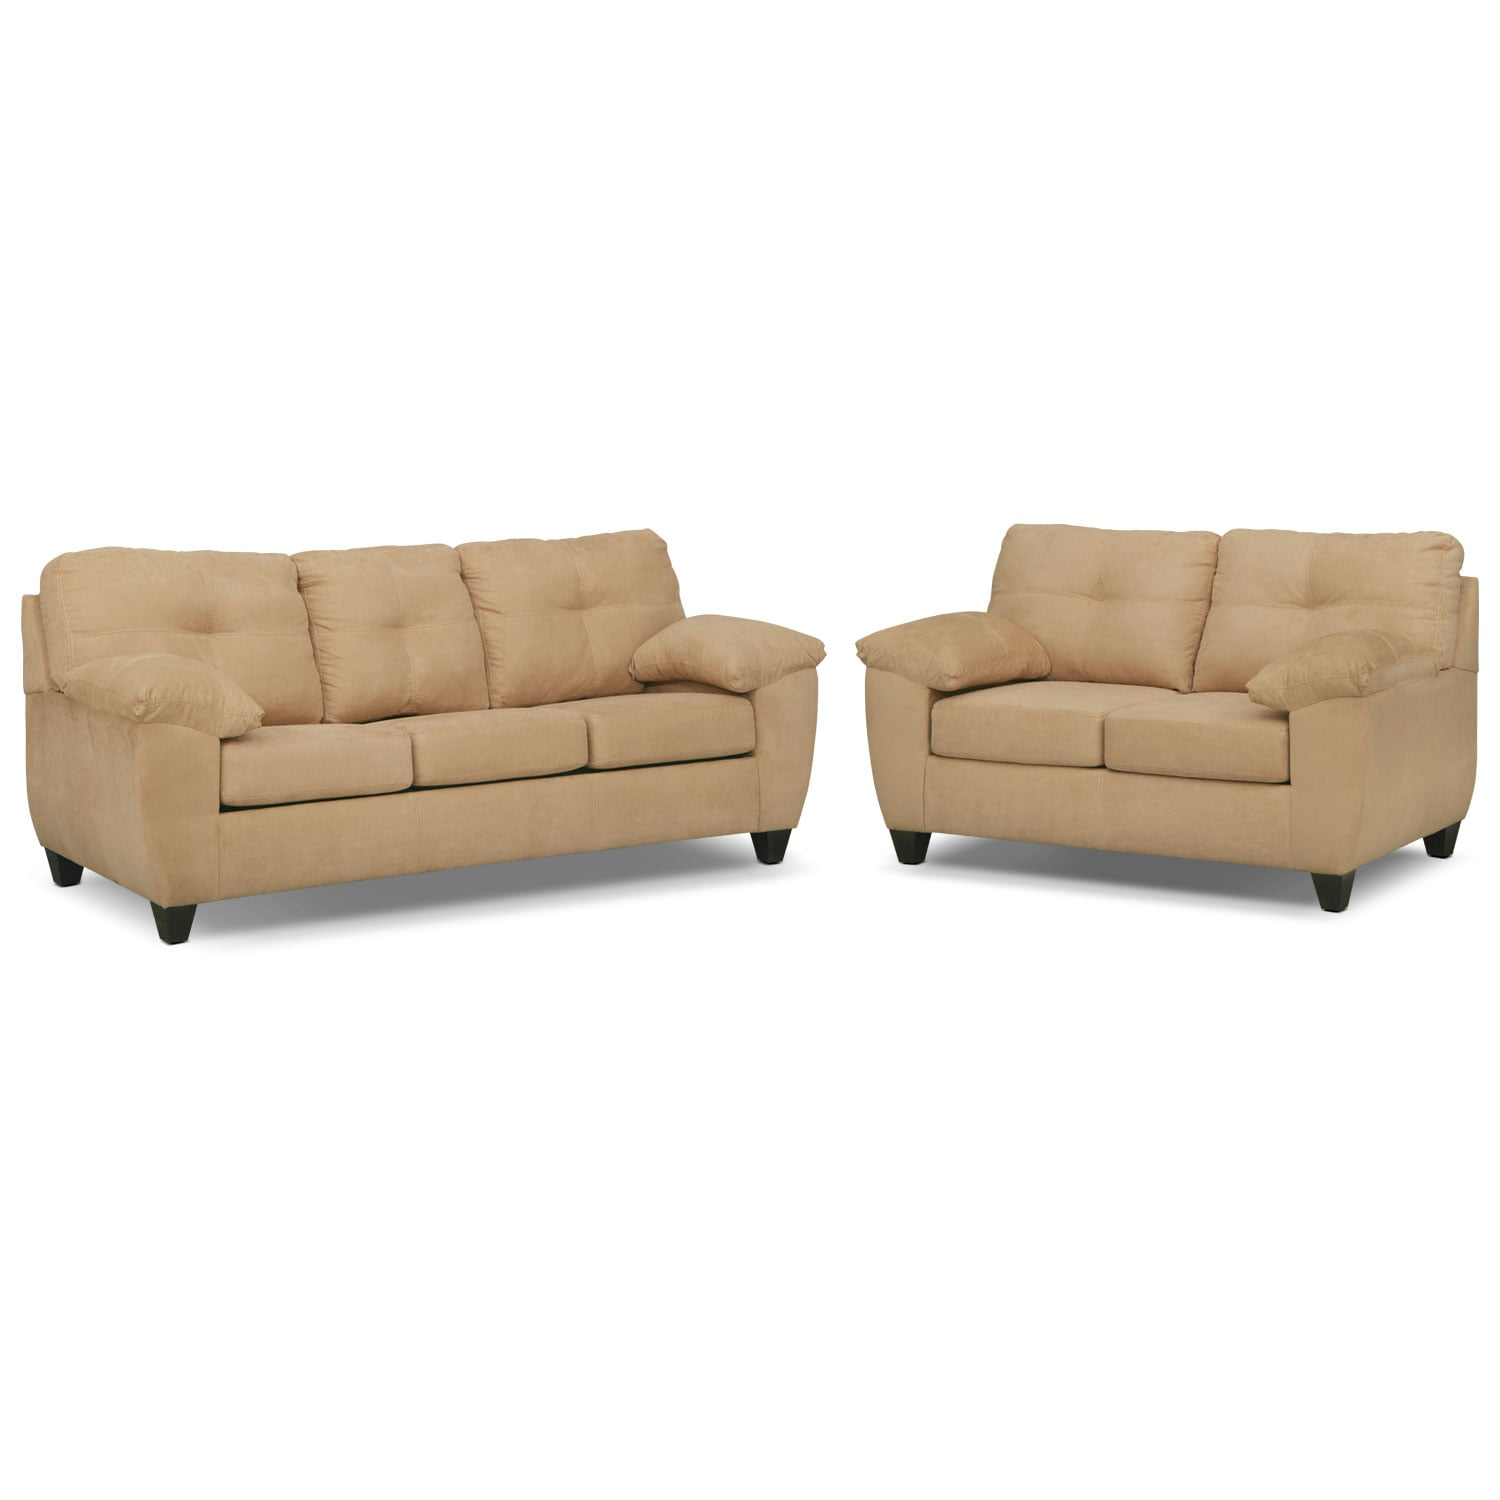 Living Room Furniture - Rialto Innerspring Sleeper Sofa and Loveseat Set - Camel